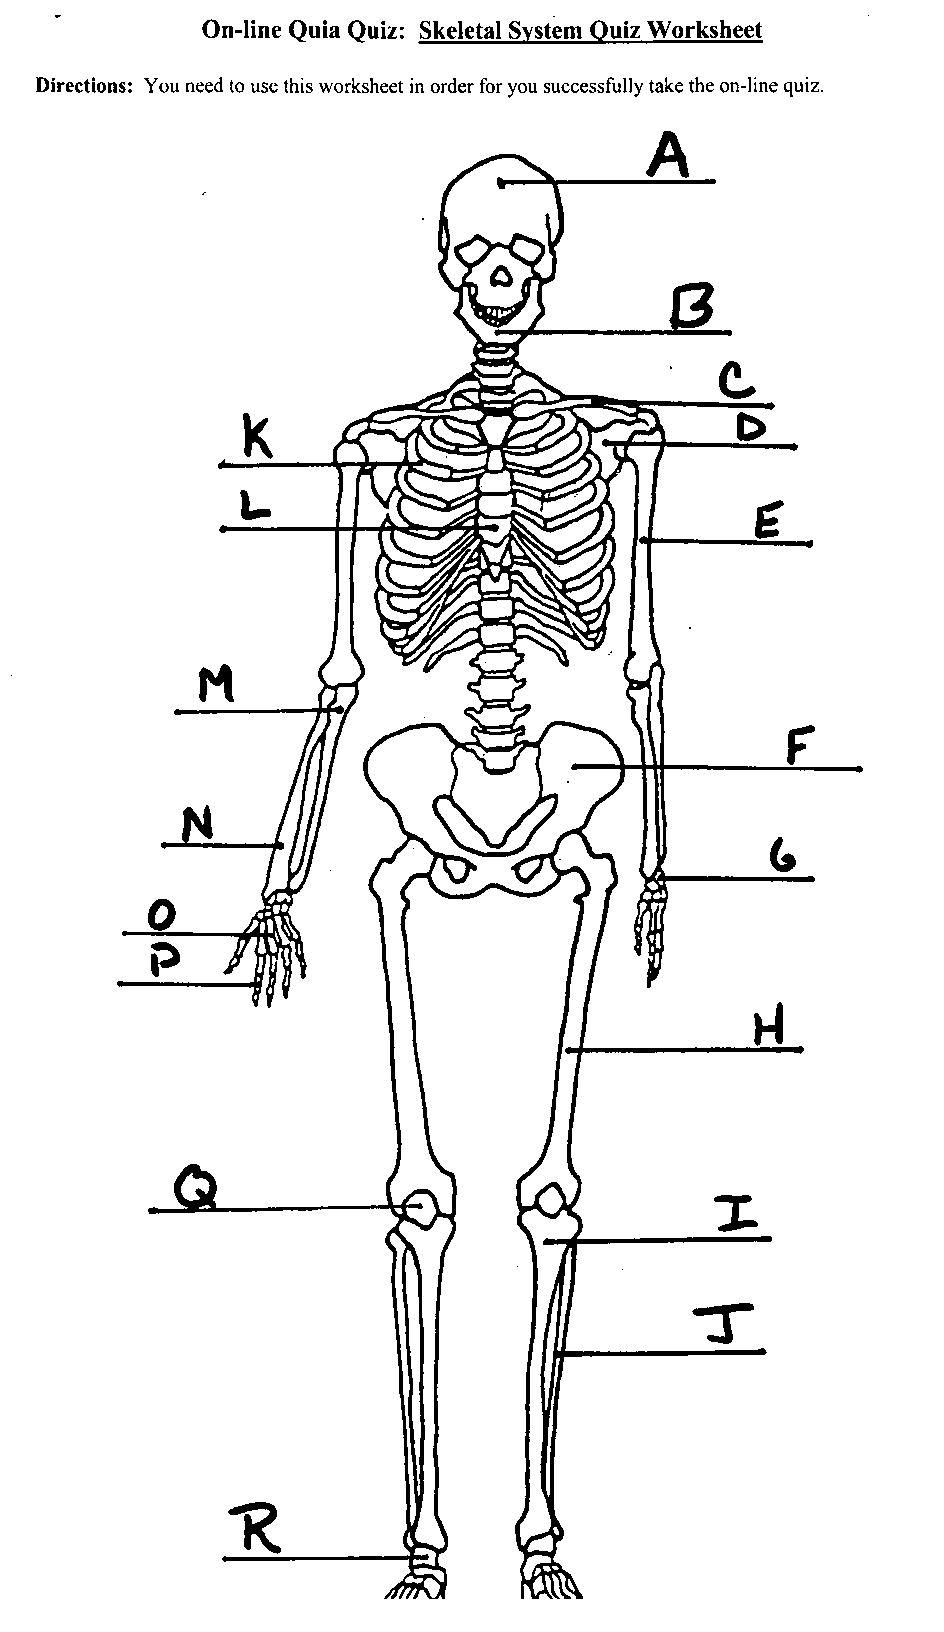 medium resolution of unlabeled diagram of the human skeleton unlabeled diagram of the human skeleton human bone structure